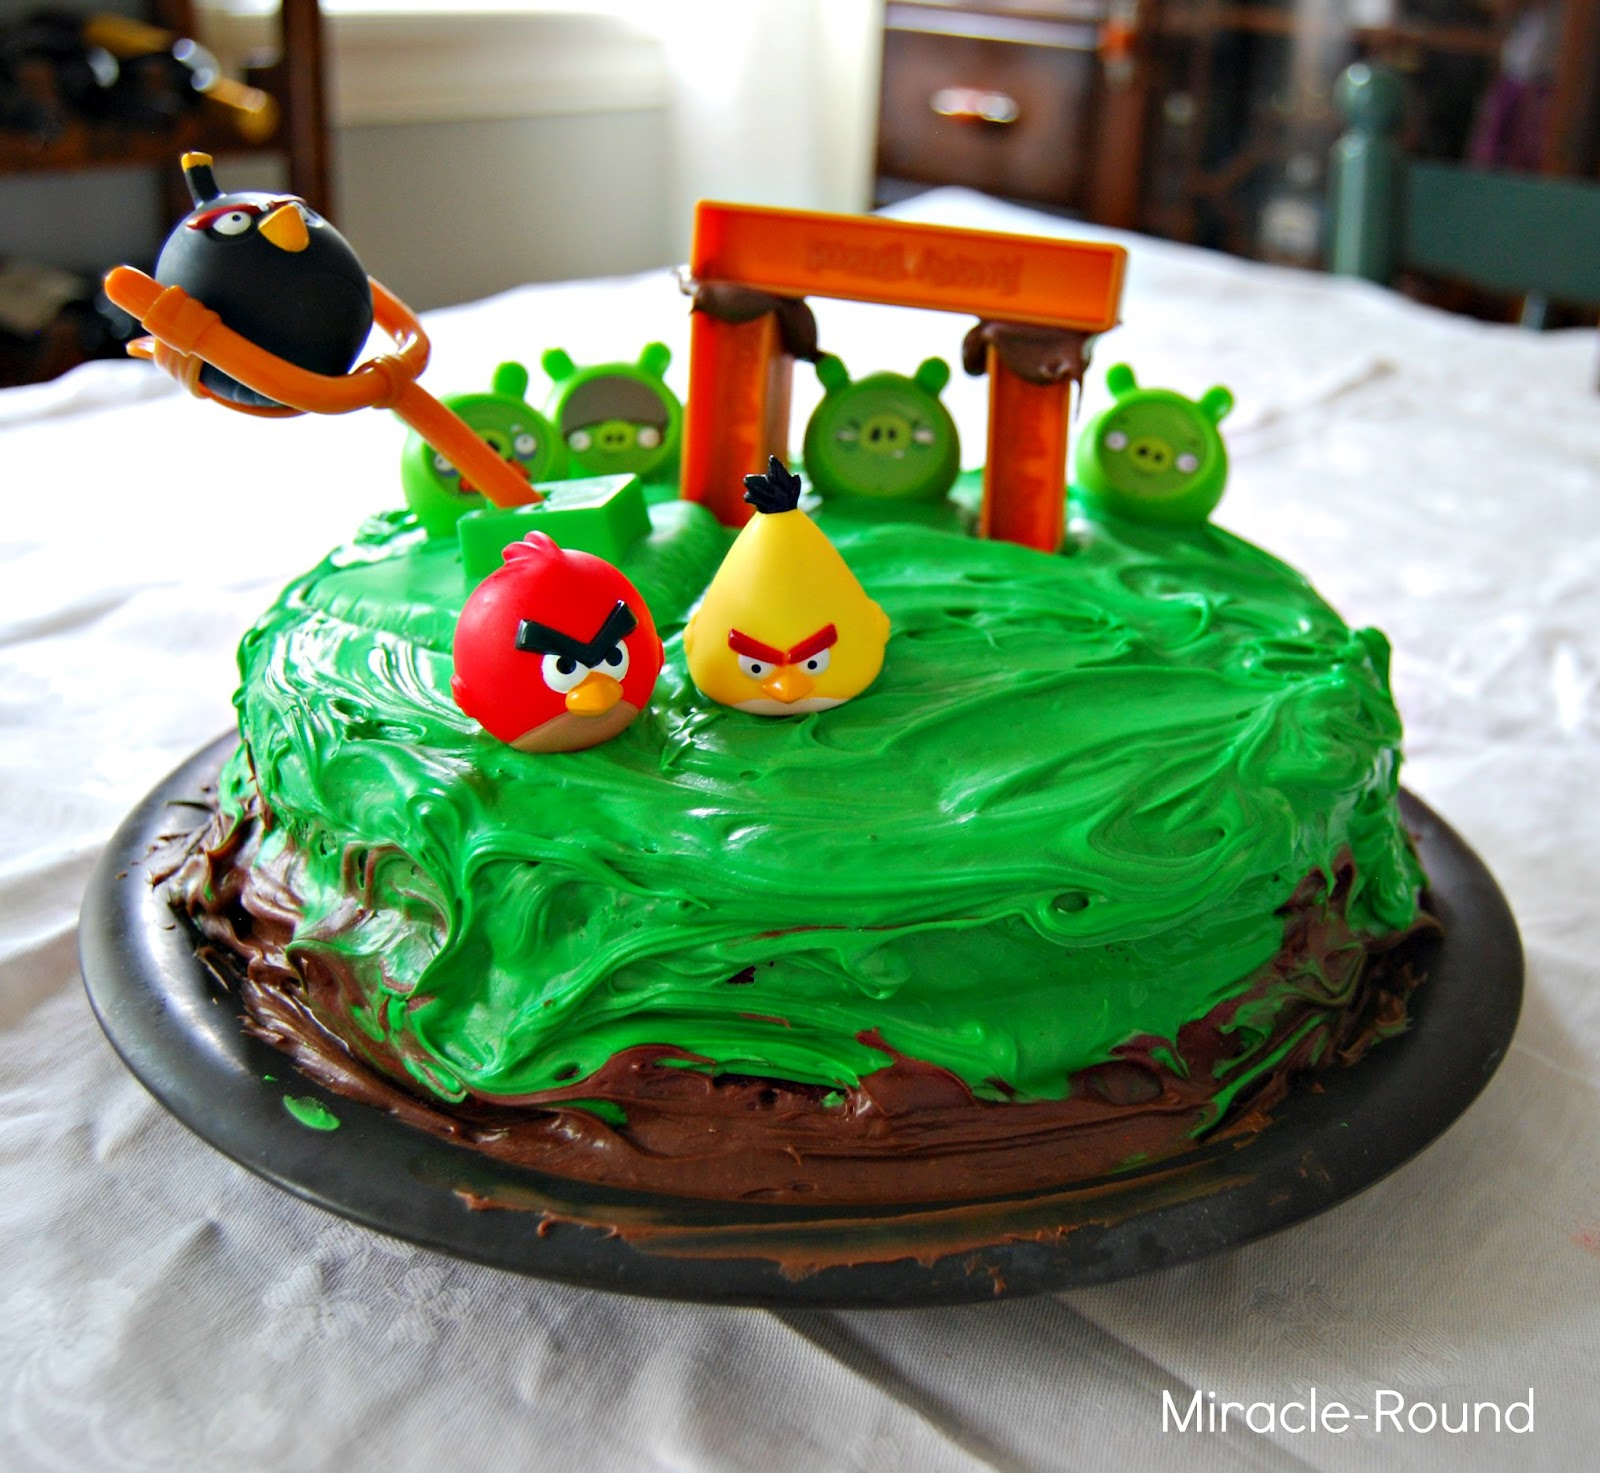 Life On The Miracle-Round: Birthday Party